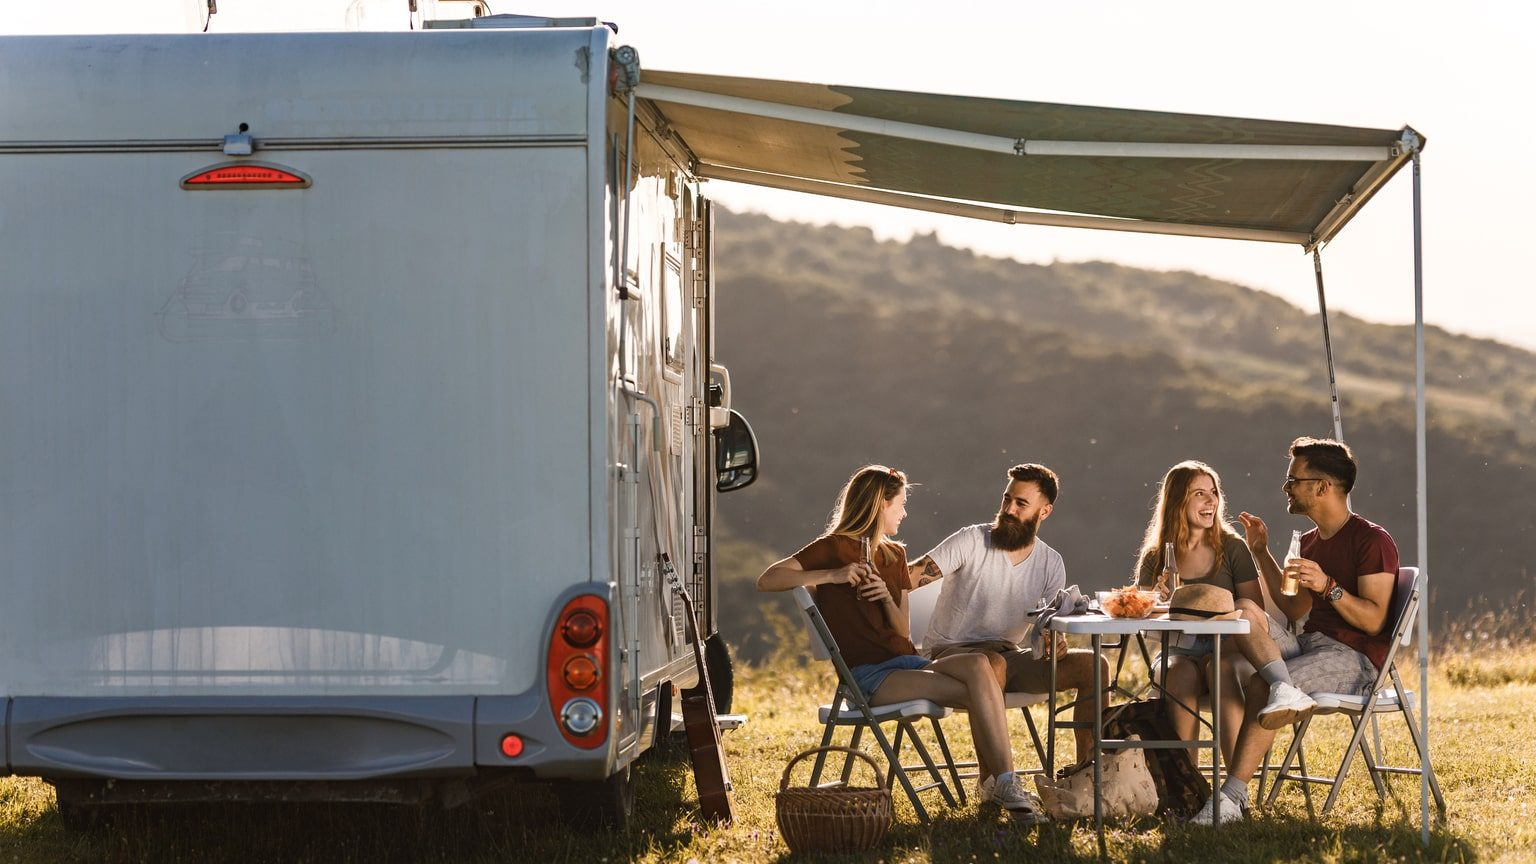 Group Of Friends Eating Outside Of RV